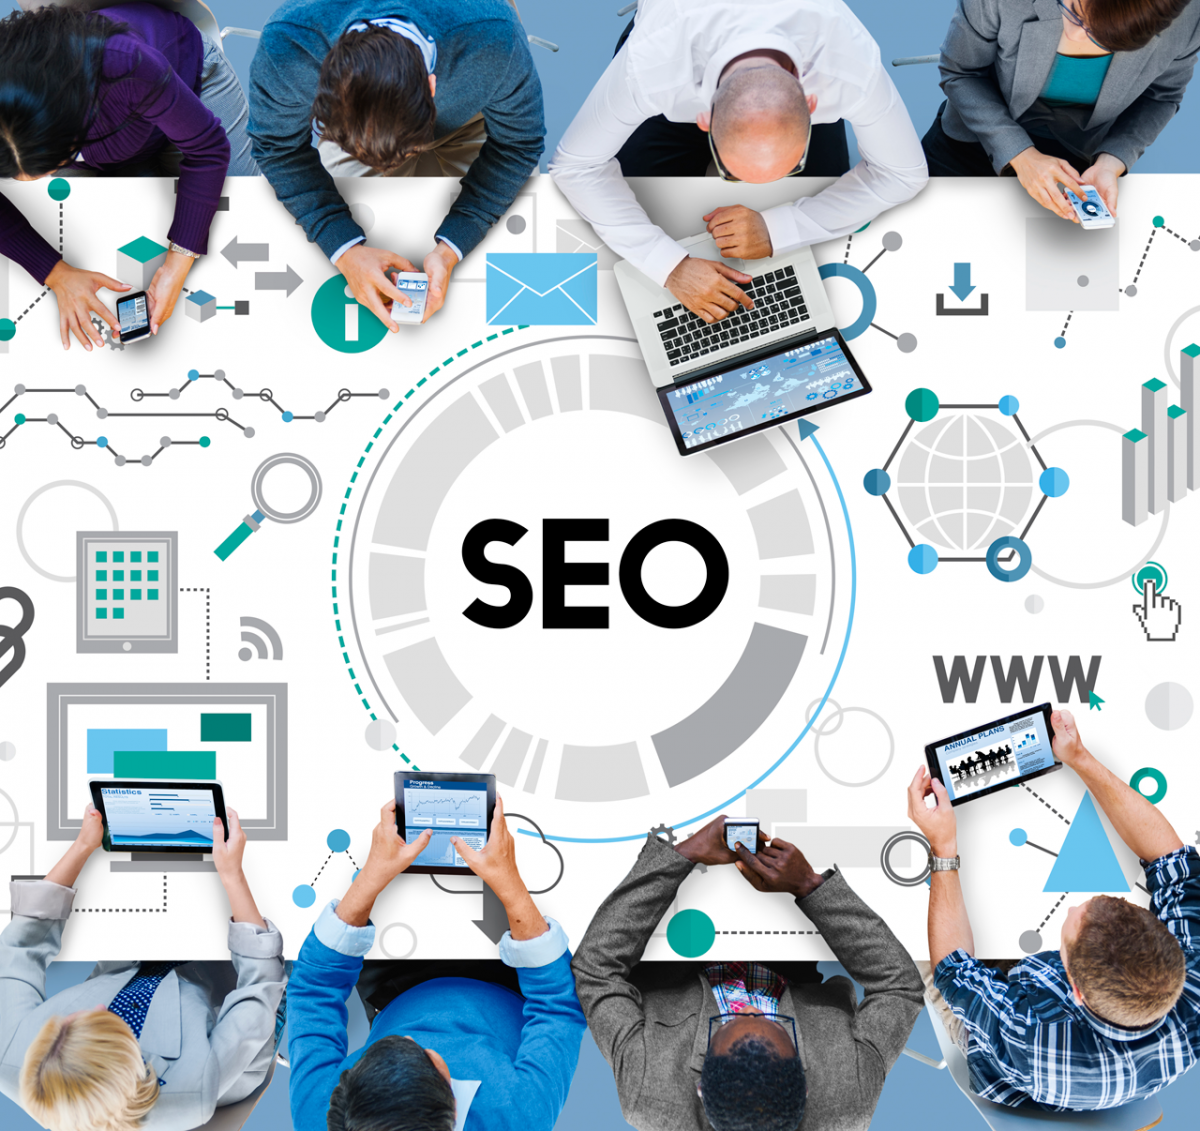 10 ways the structure of a website can affect SEO